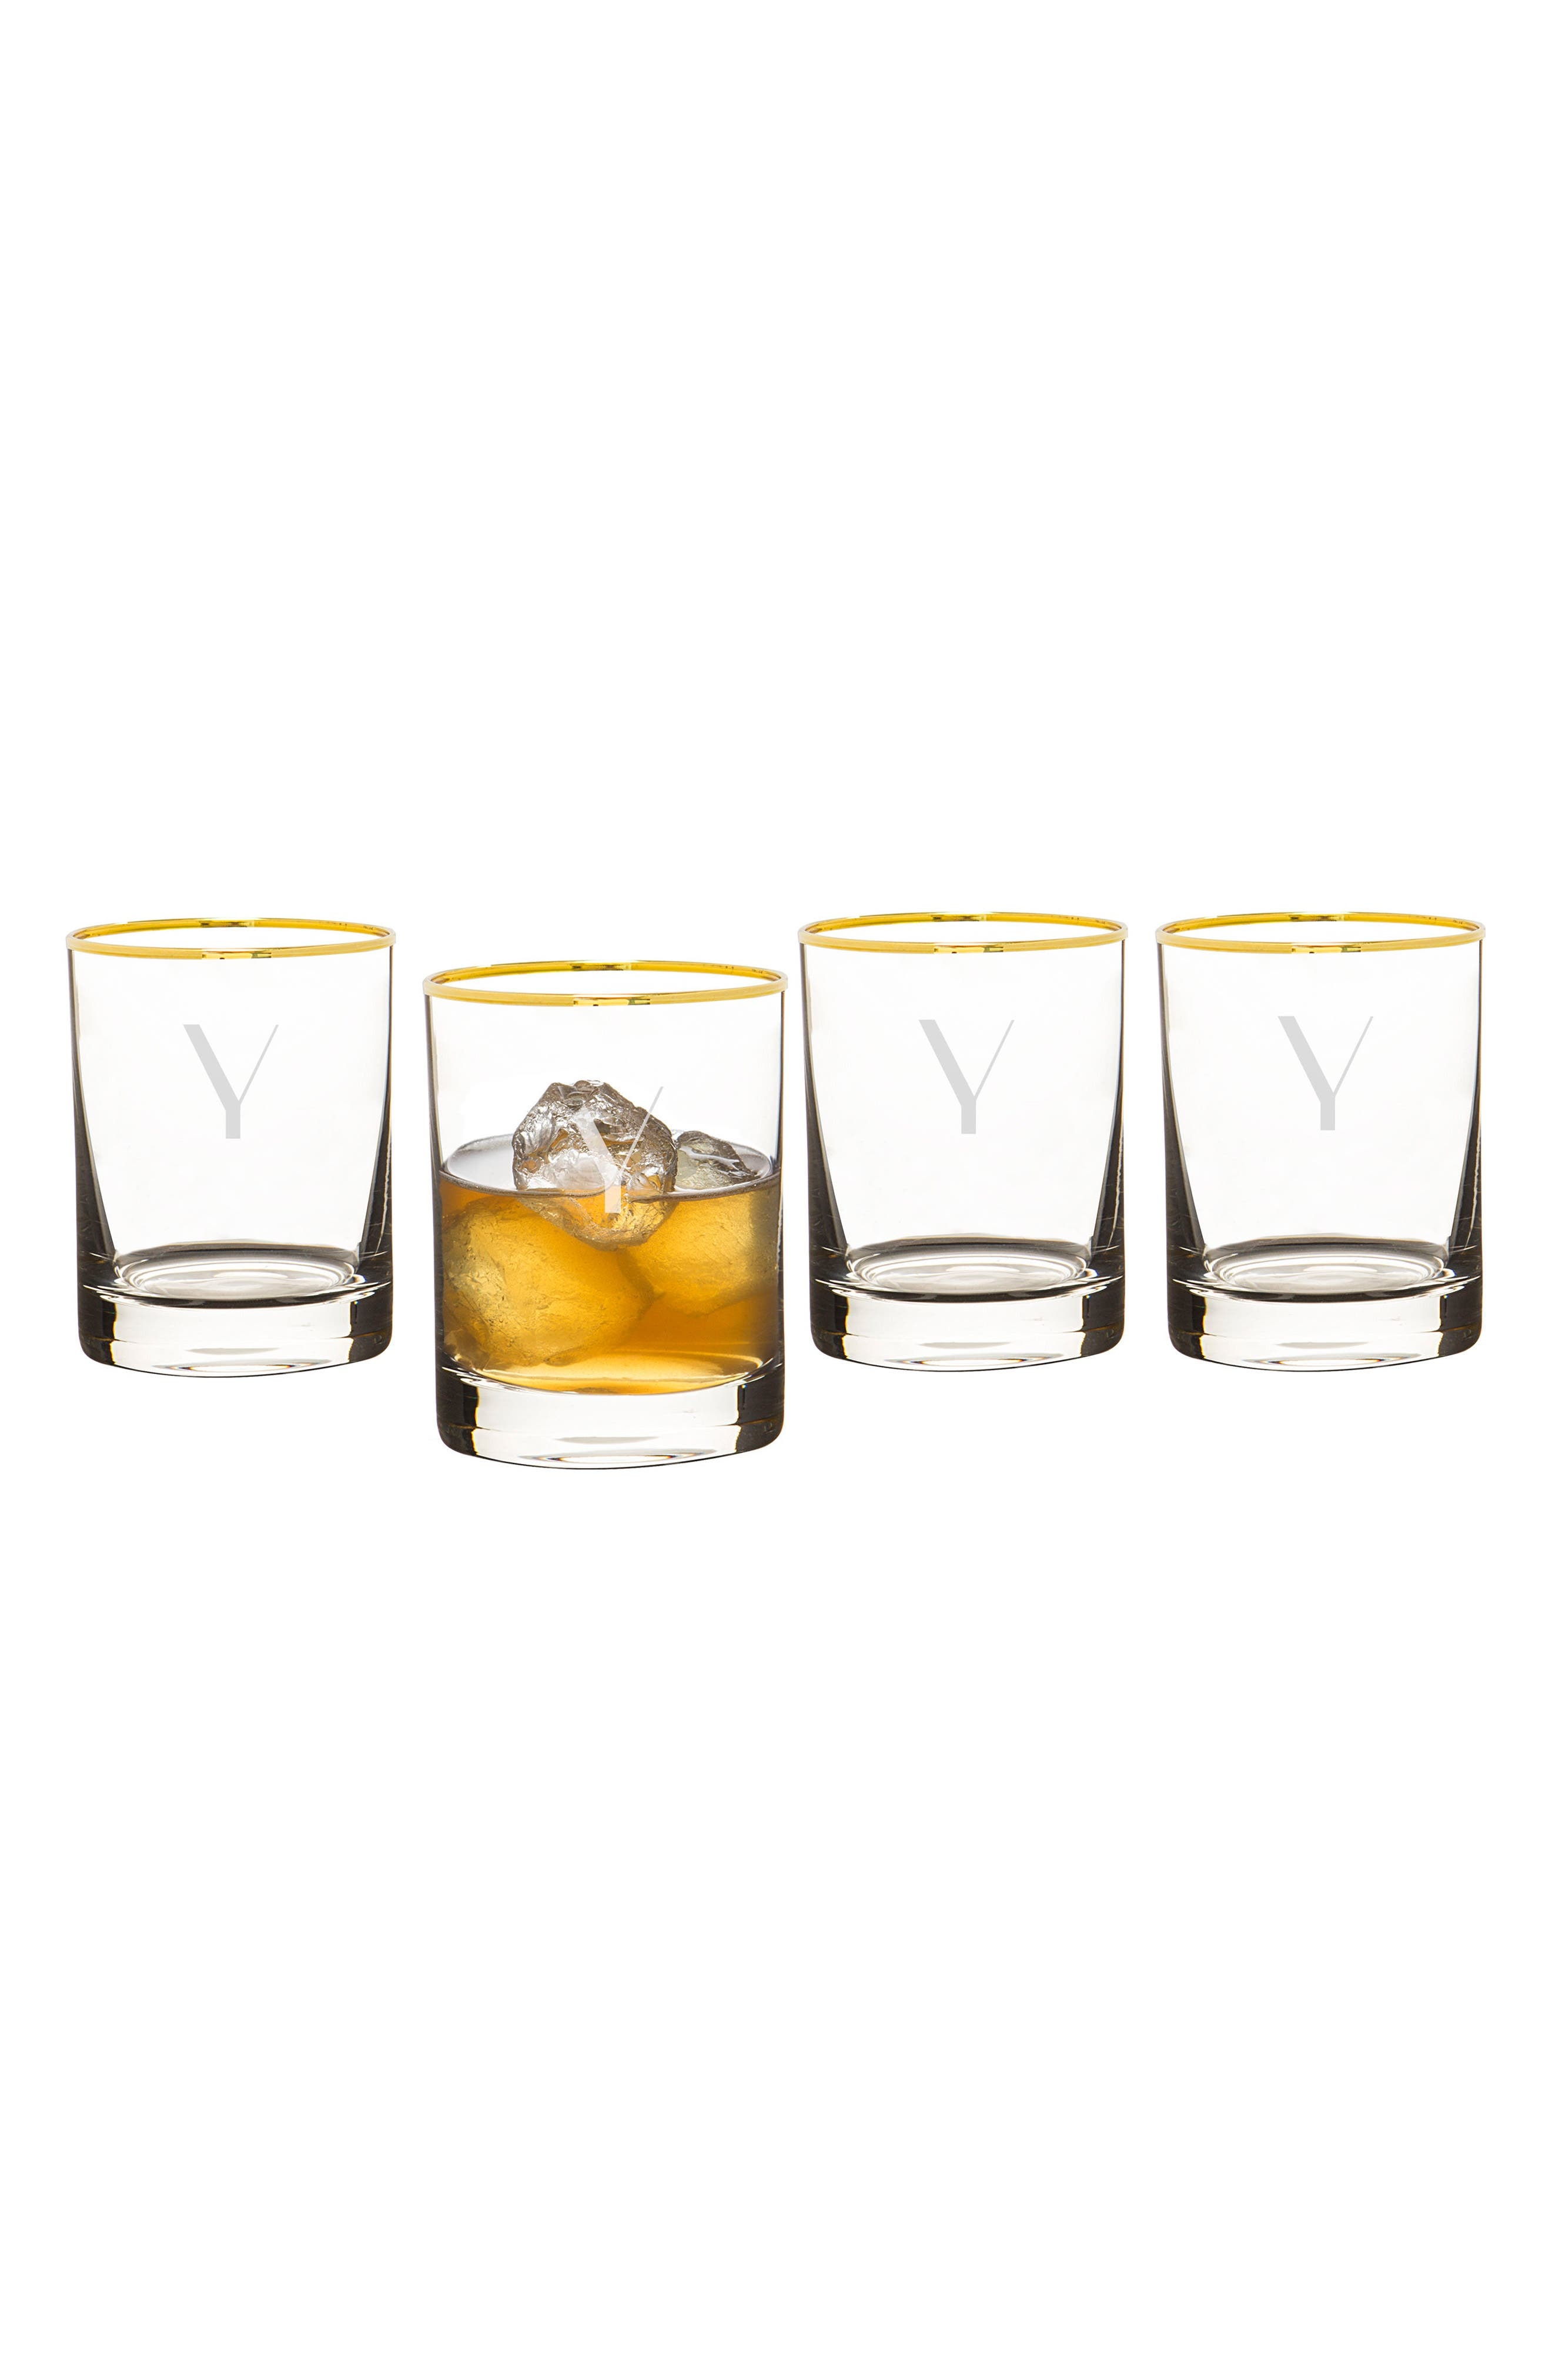 Monogram Set of 4 Double Old Fashioned Glasses,                             Main thumbnail 25, color,